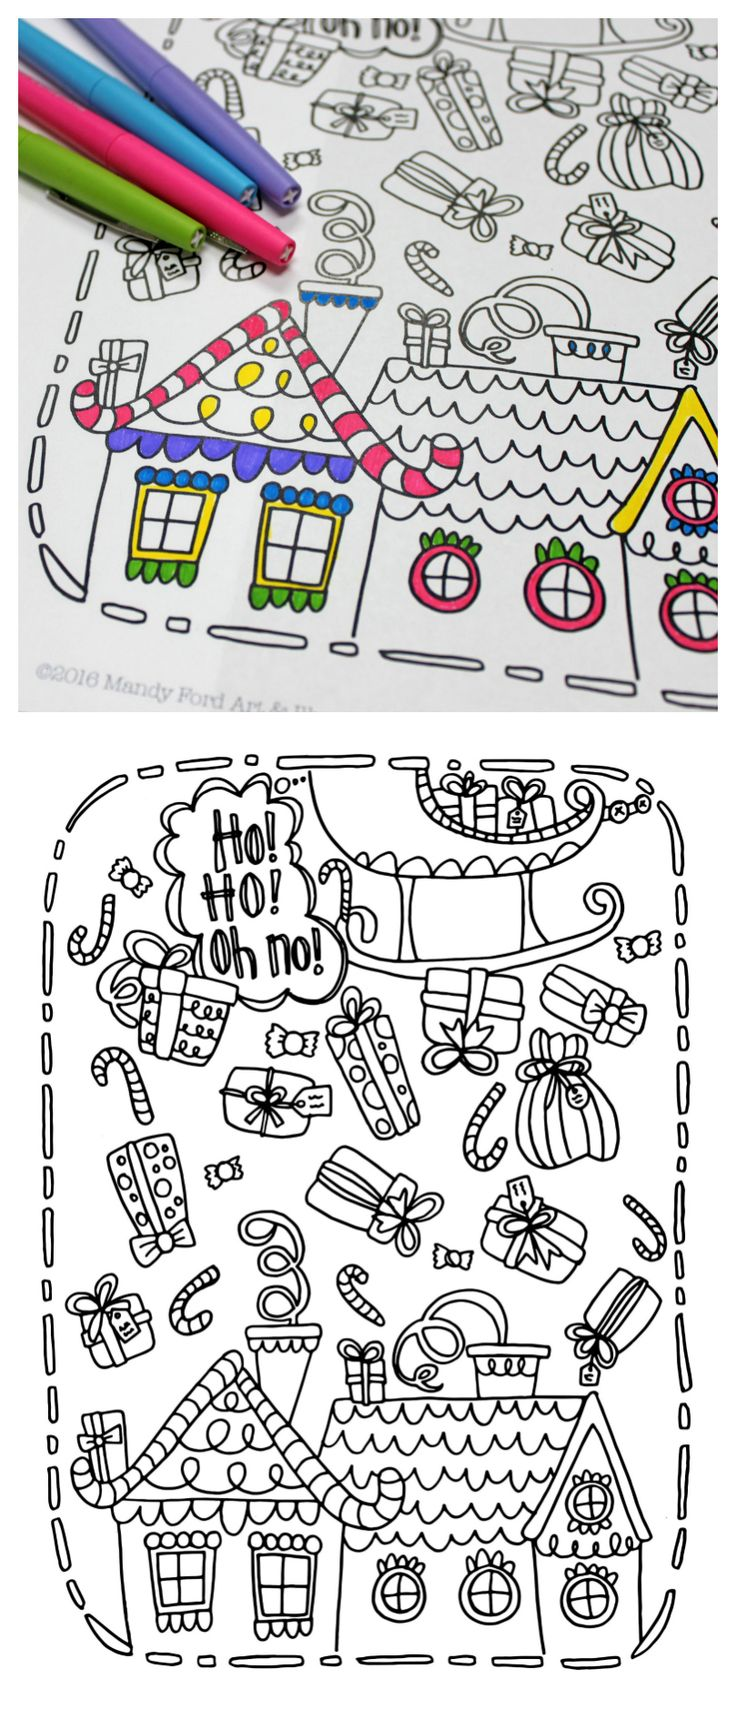 Why do we call it christmas coloring pages - Free Printable Christmas Coloring Page P Gina Gratis Para Colorear De Navidad Christmas